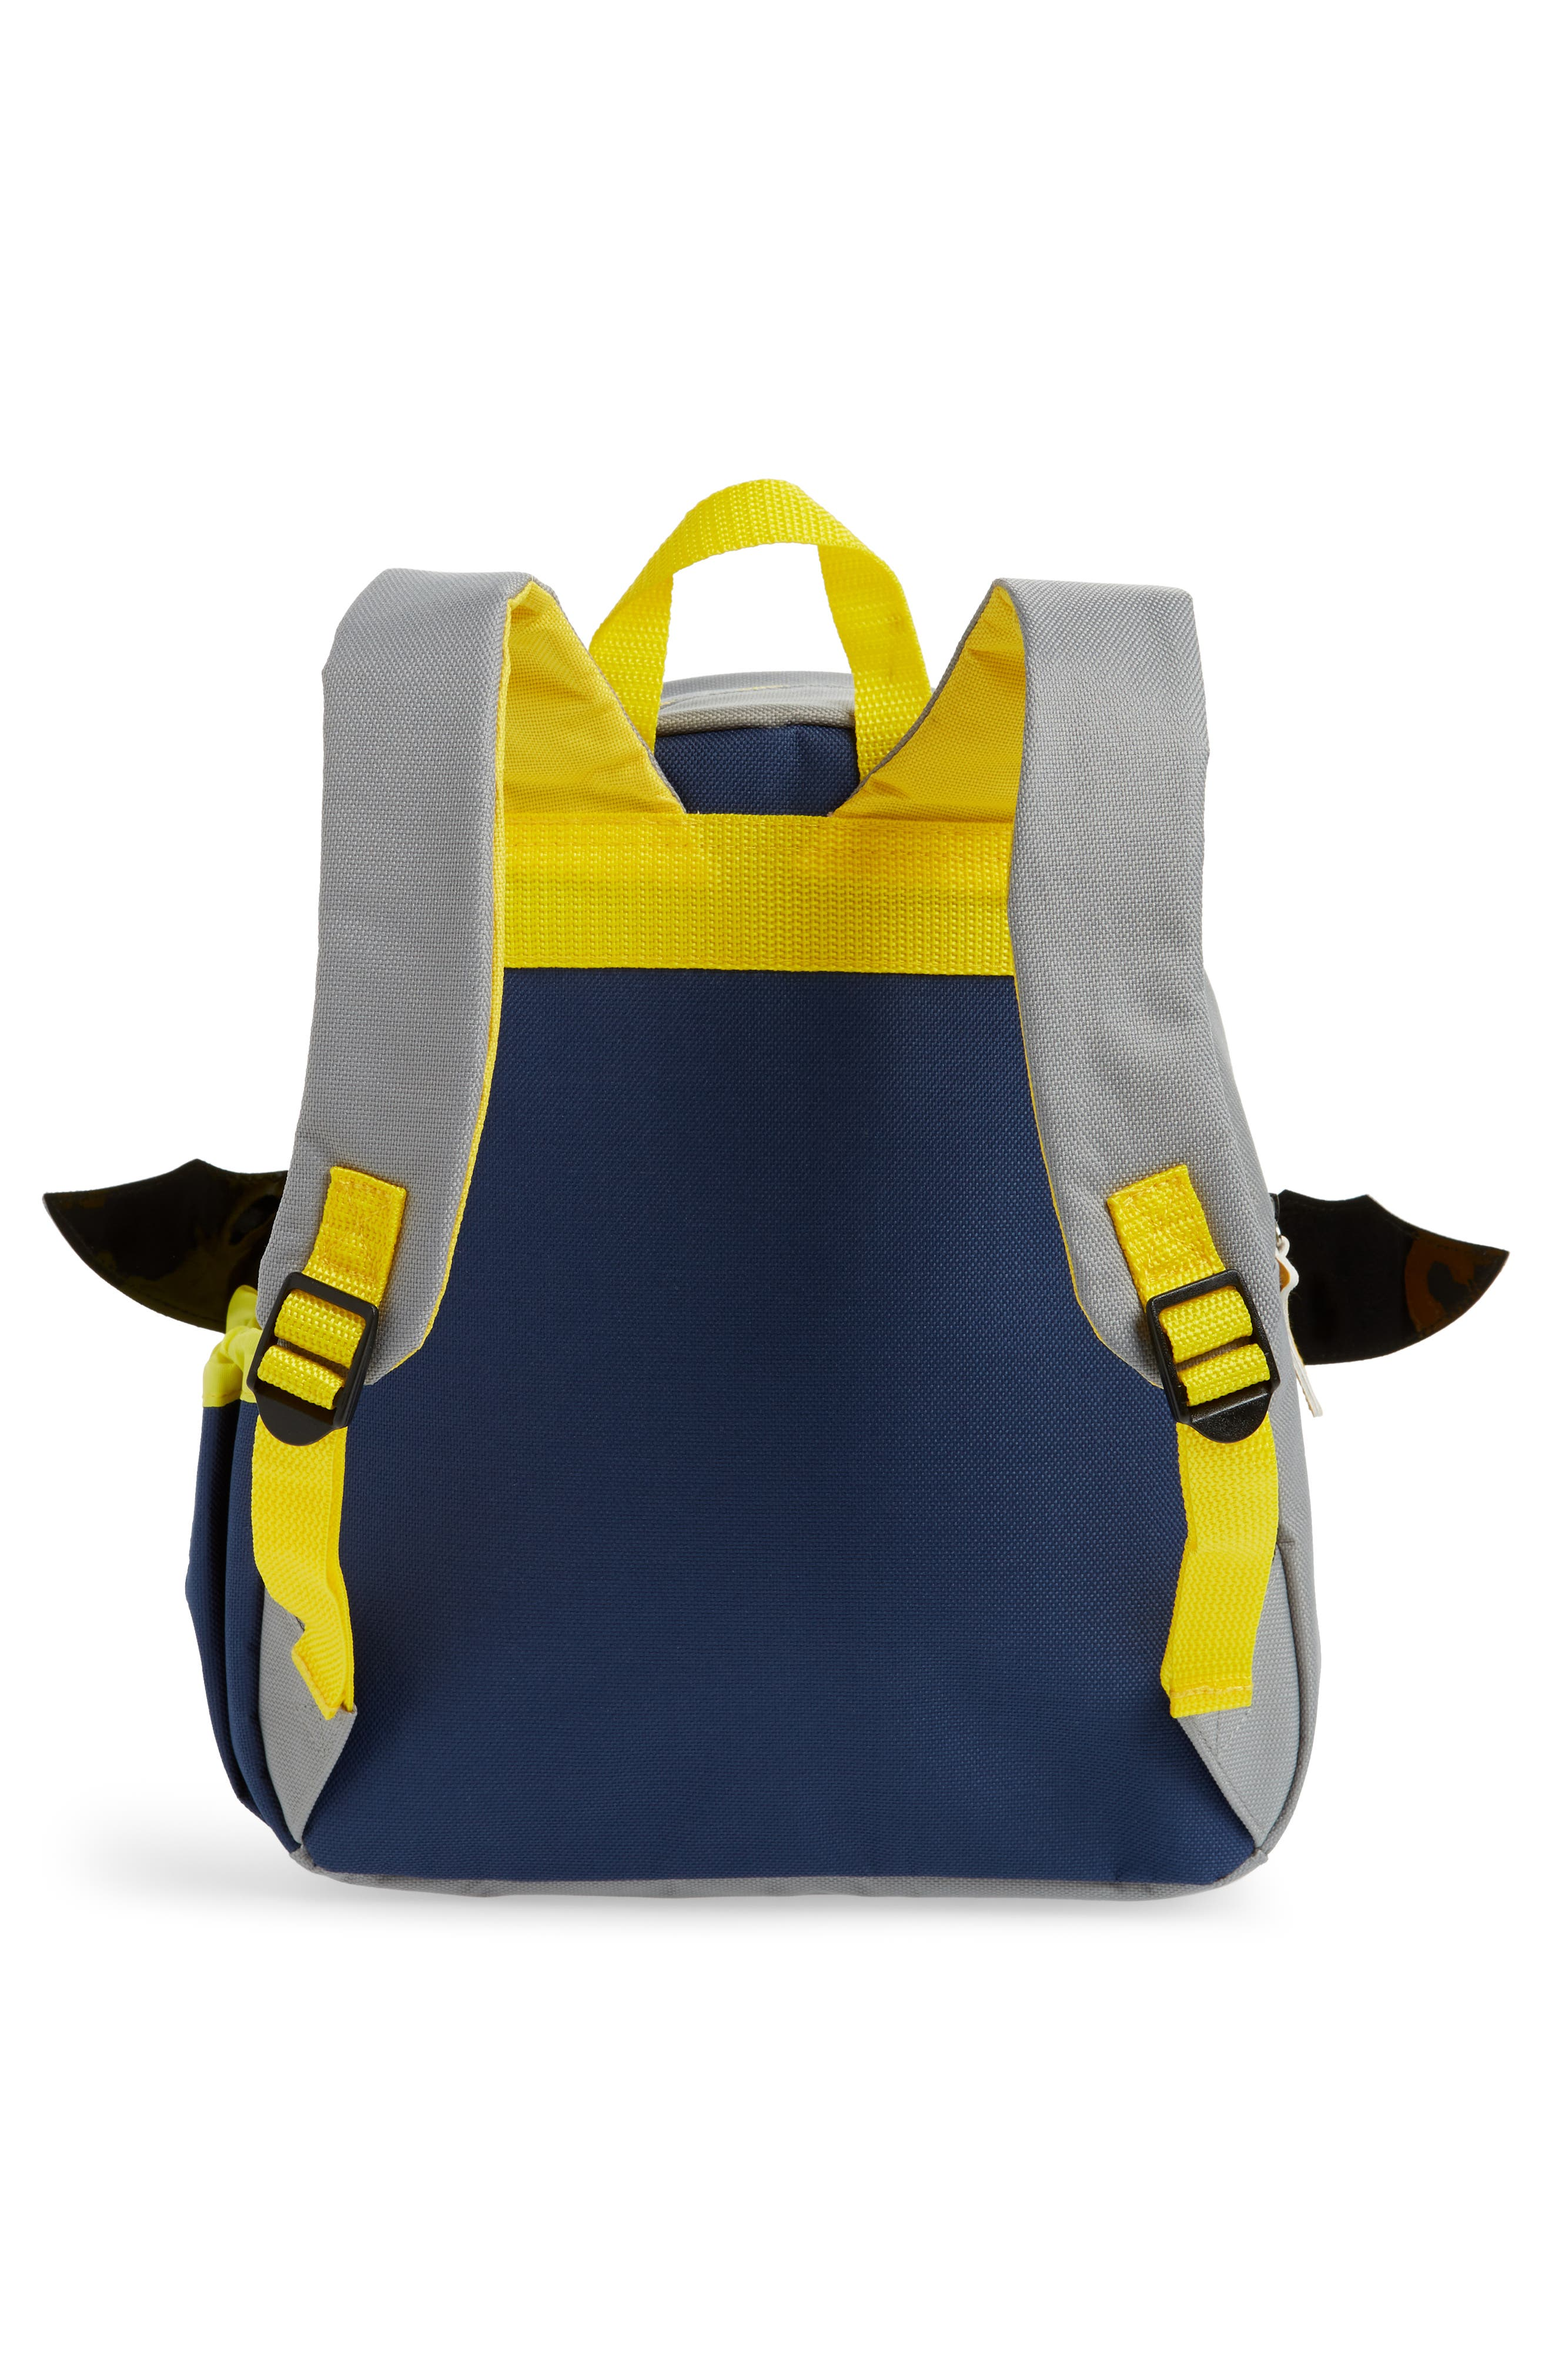 Zoo Pack Backpack,                             Alternate thumbnail 2, color,                             NAVY BLUE